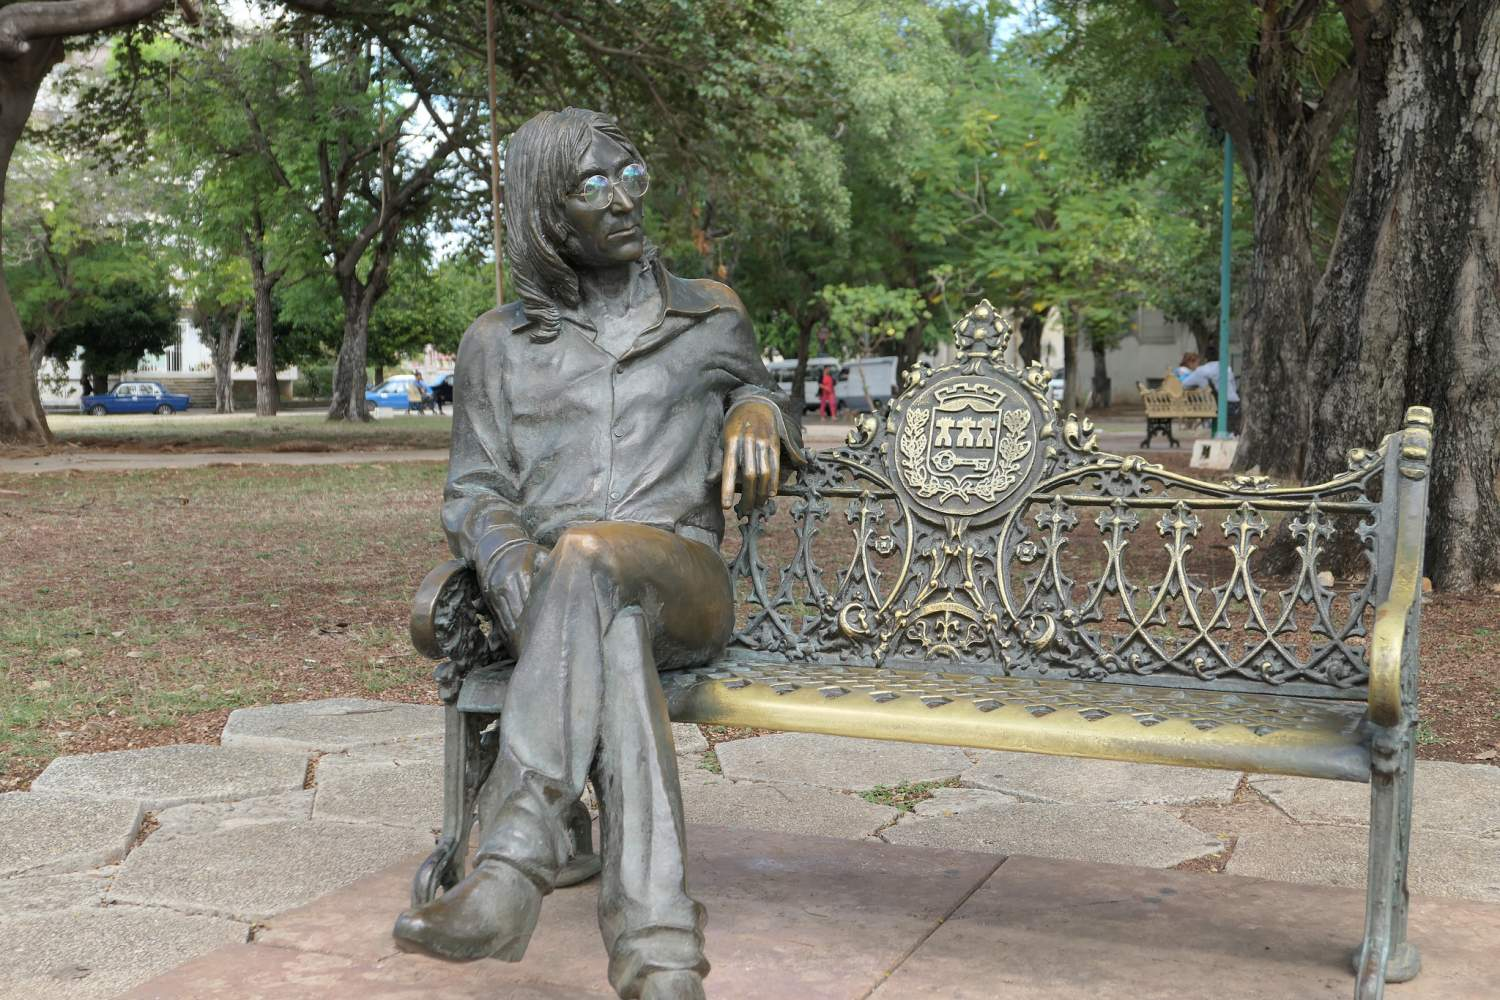 Statue of John Lennon in La Havana